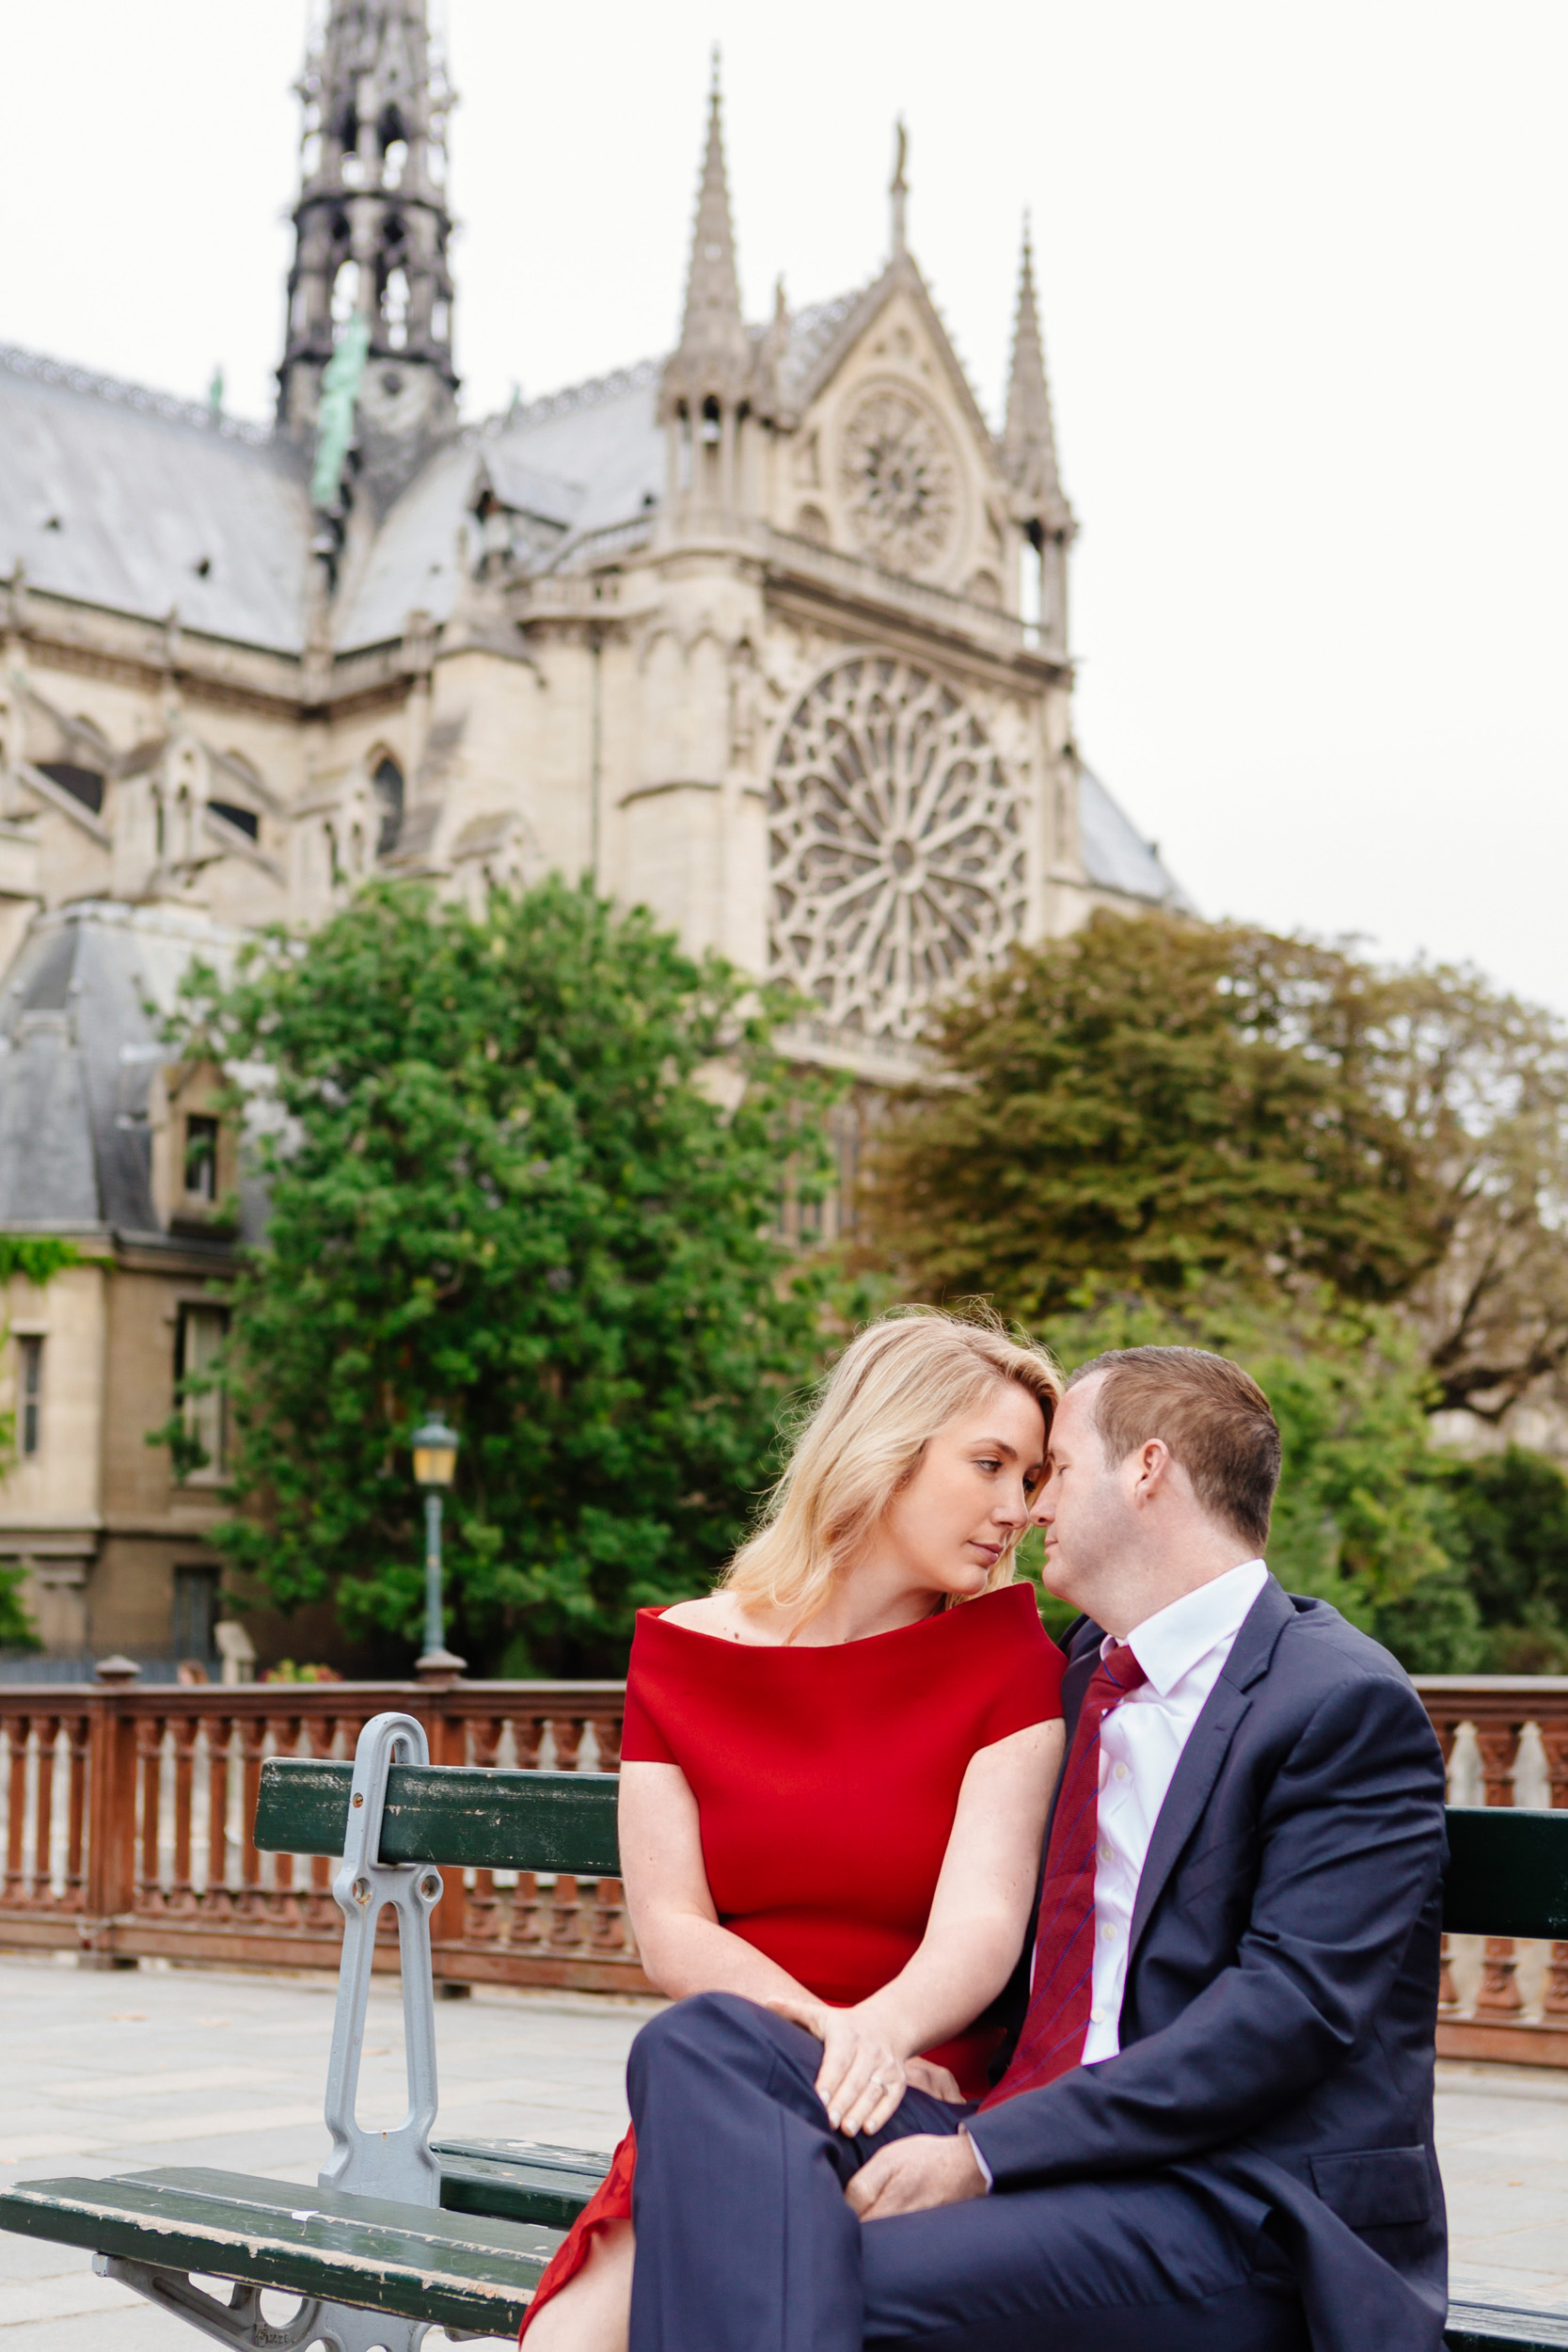 Romantic portrait of a couple sitting on a bench with the view of Notre Dame Cathedral captured by Paris Photographer Federico Guendel www.iheartparis.fr